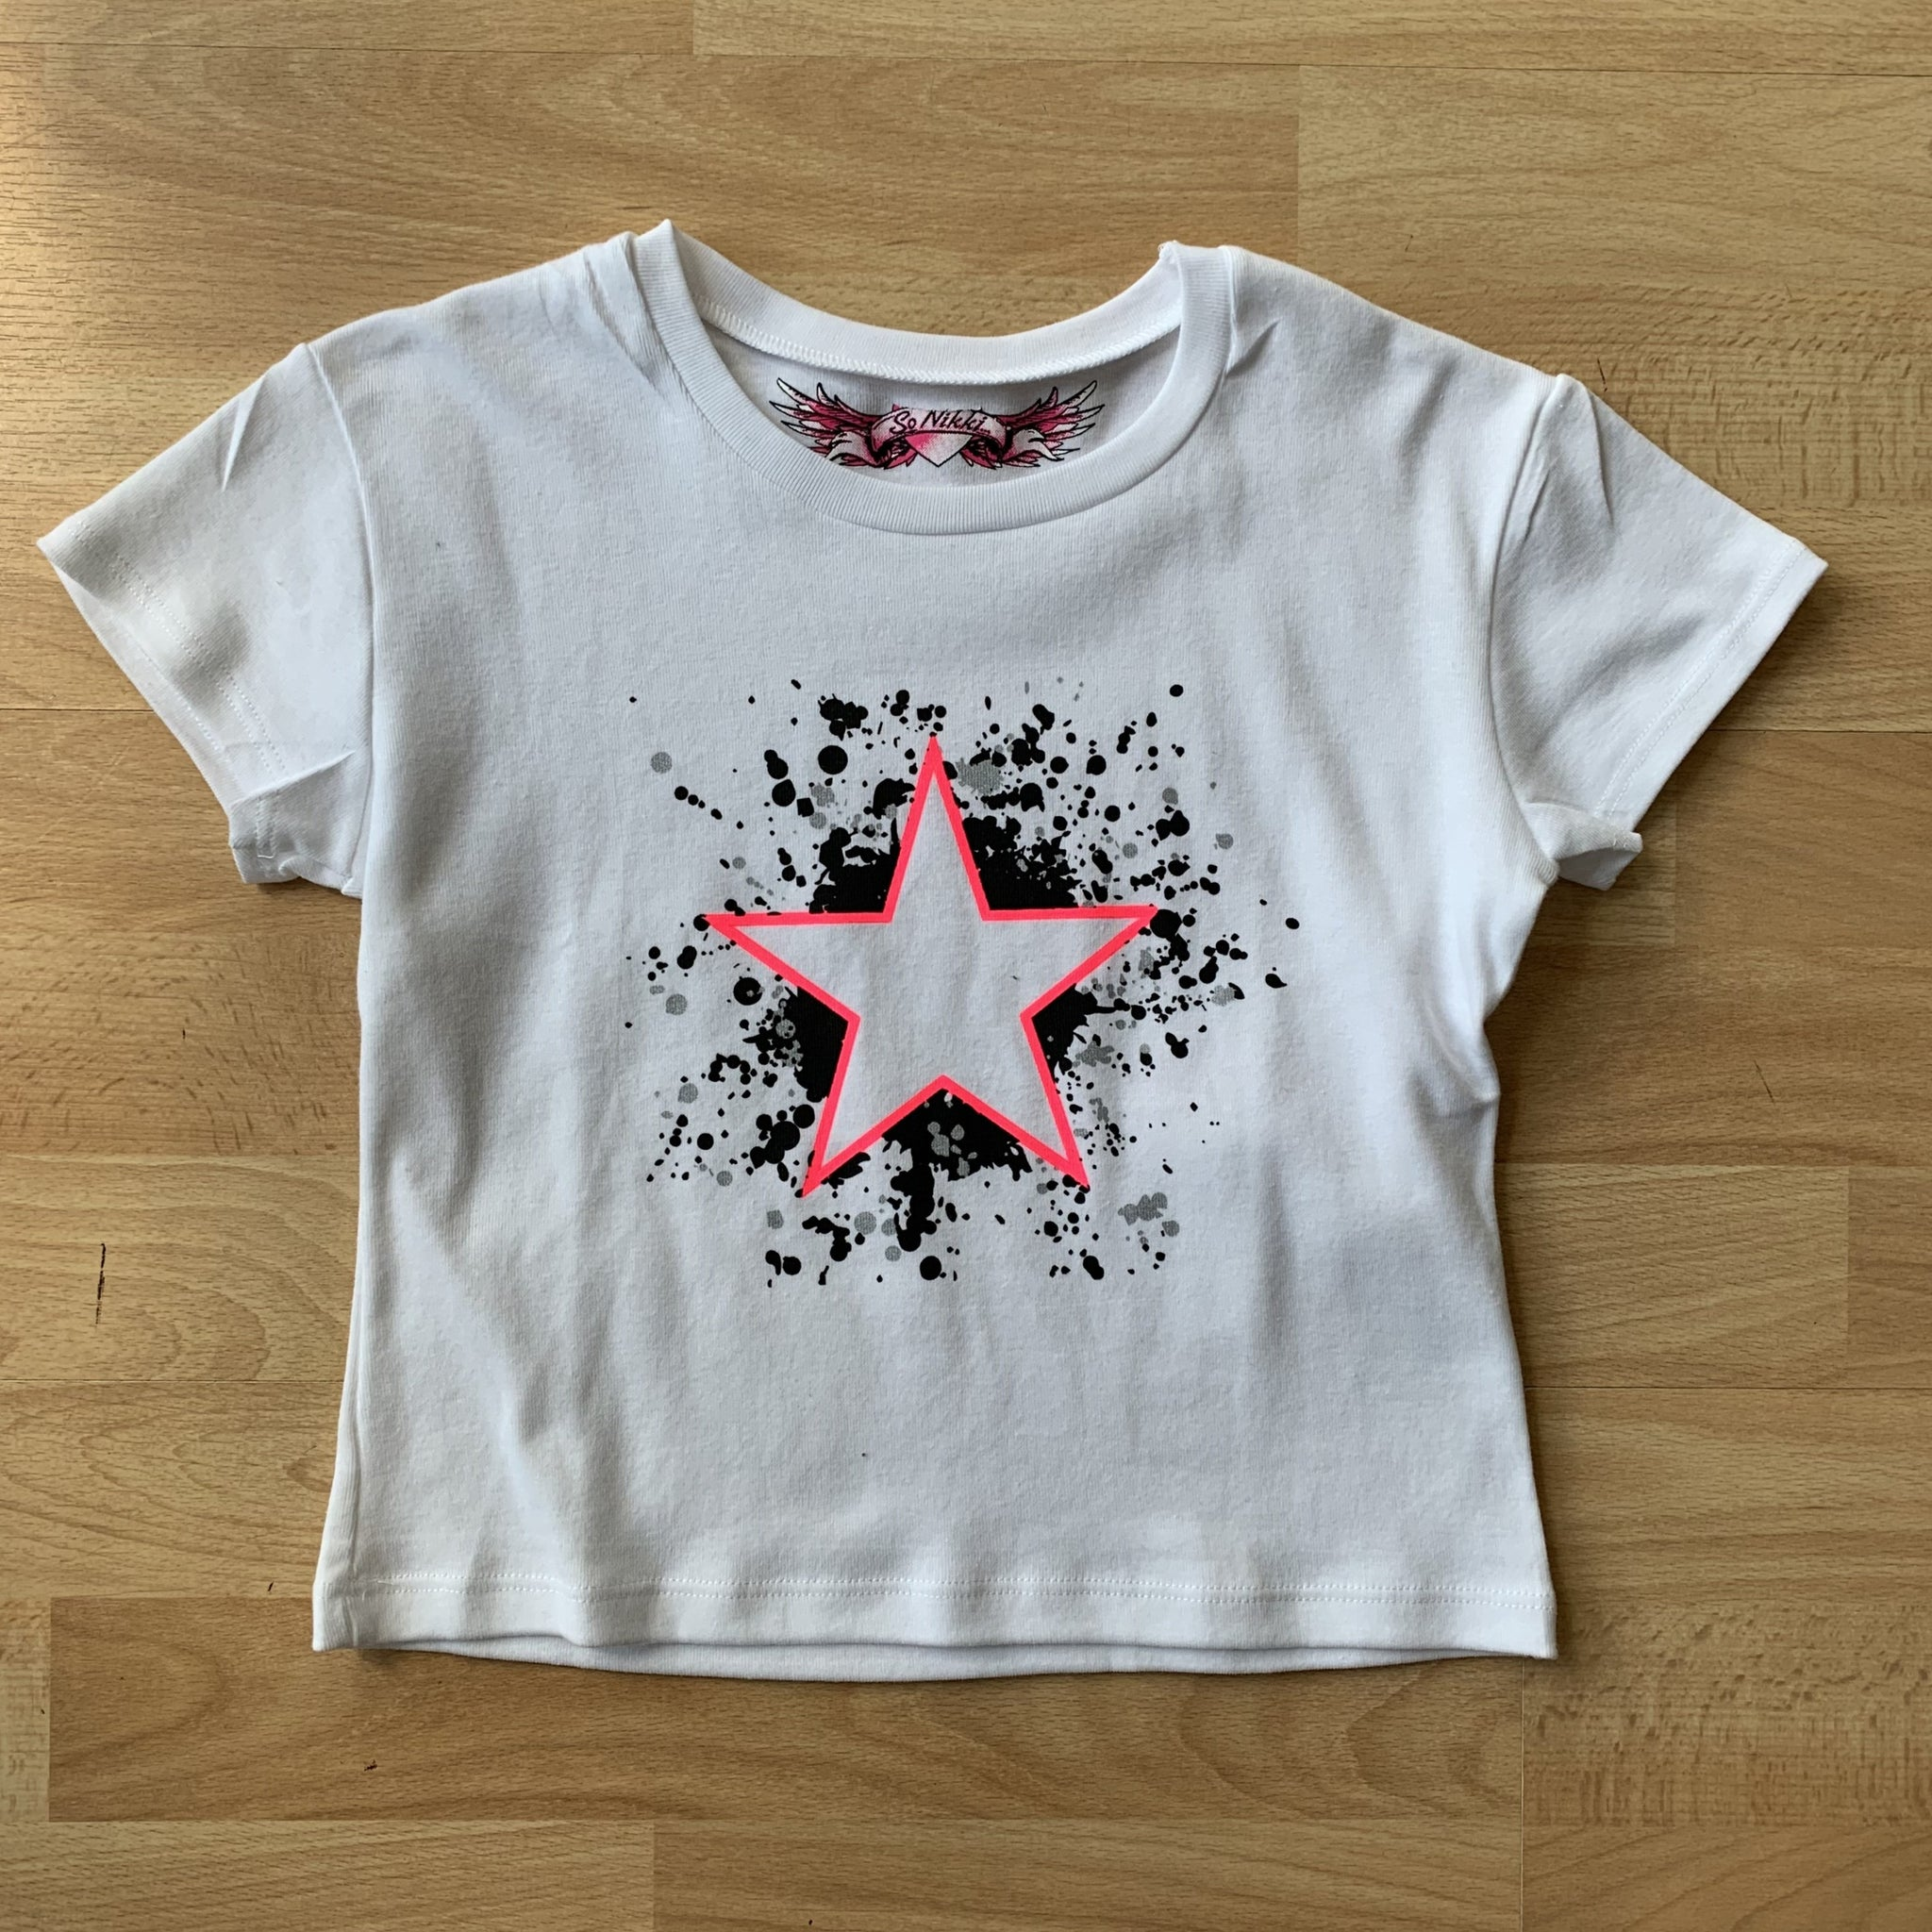 Neon star graphic kids tee